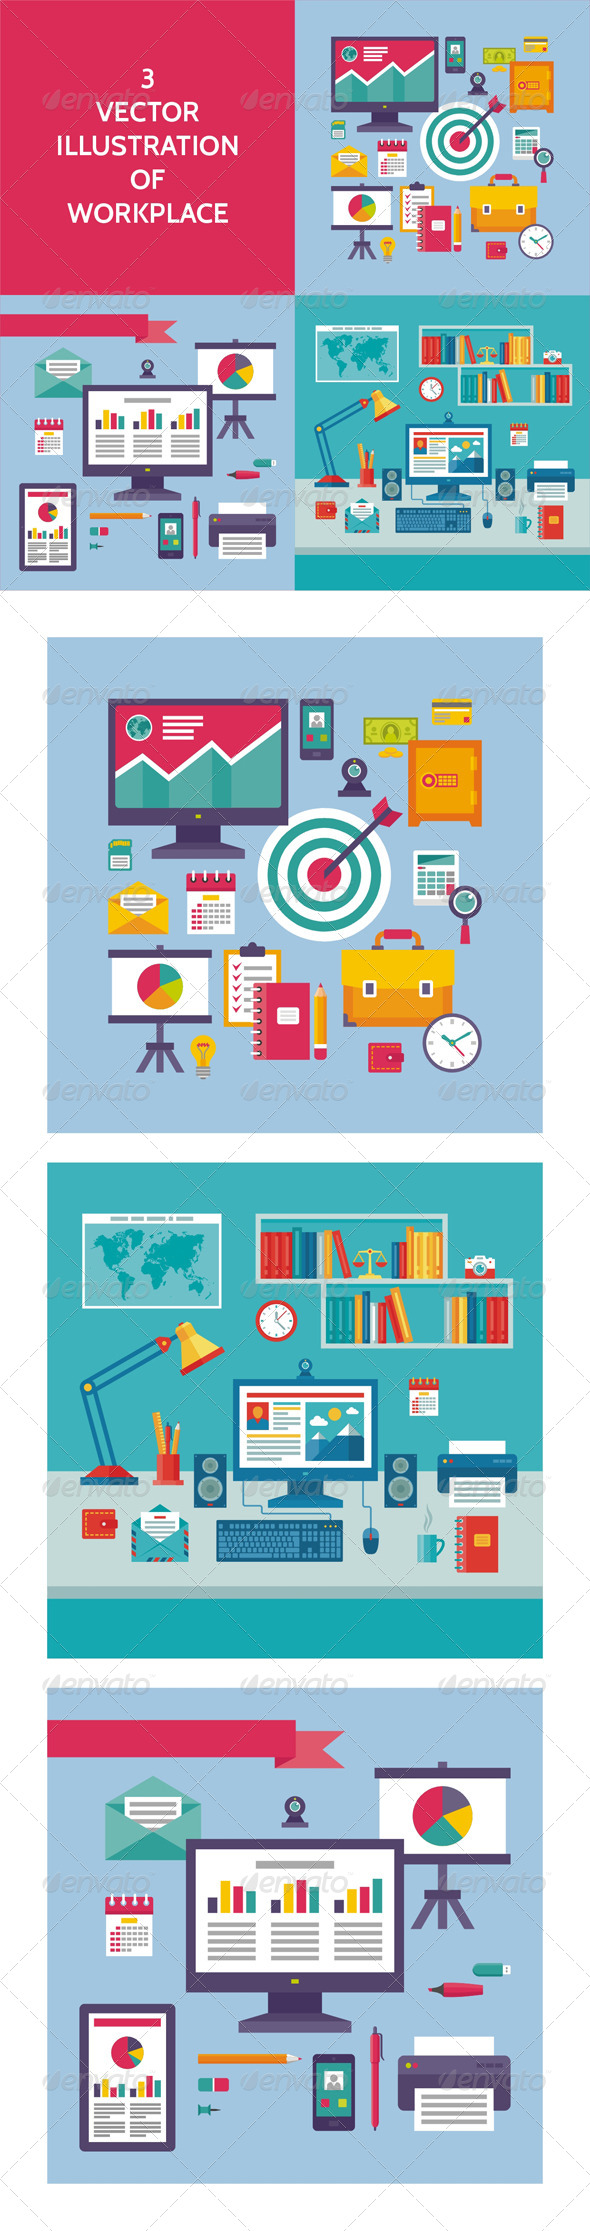 GraphicRiver 3 Illustrations of Workplace 7909038